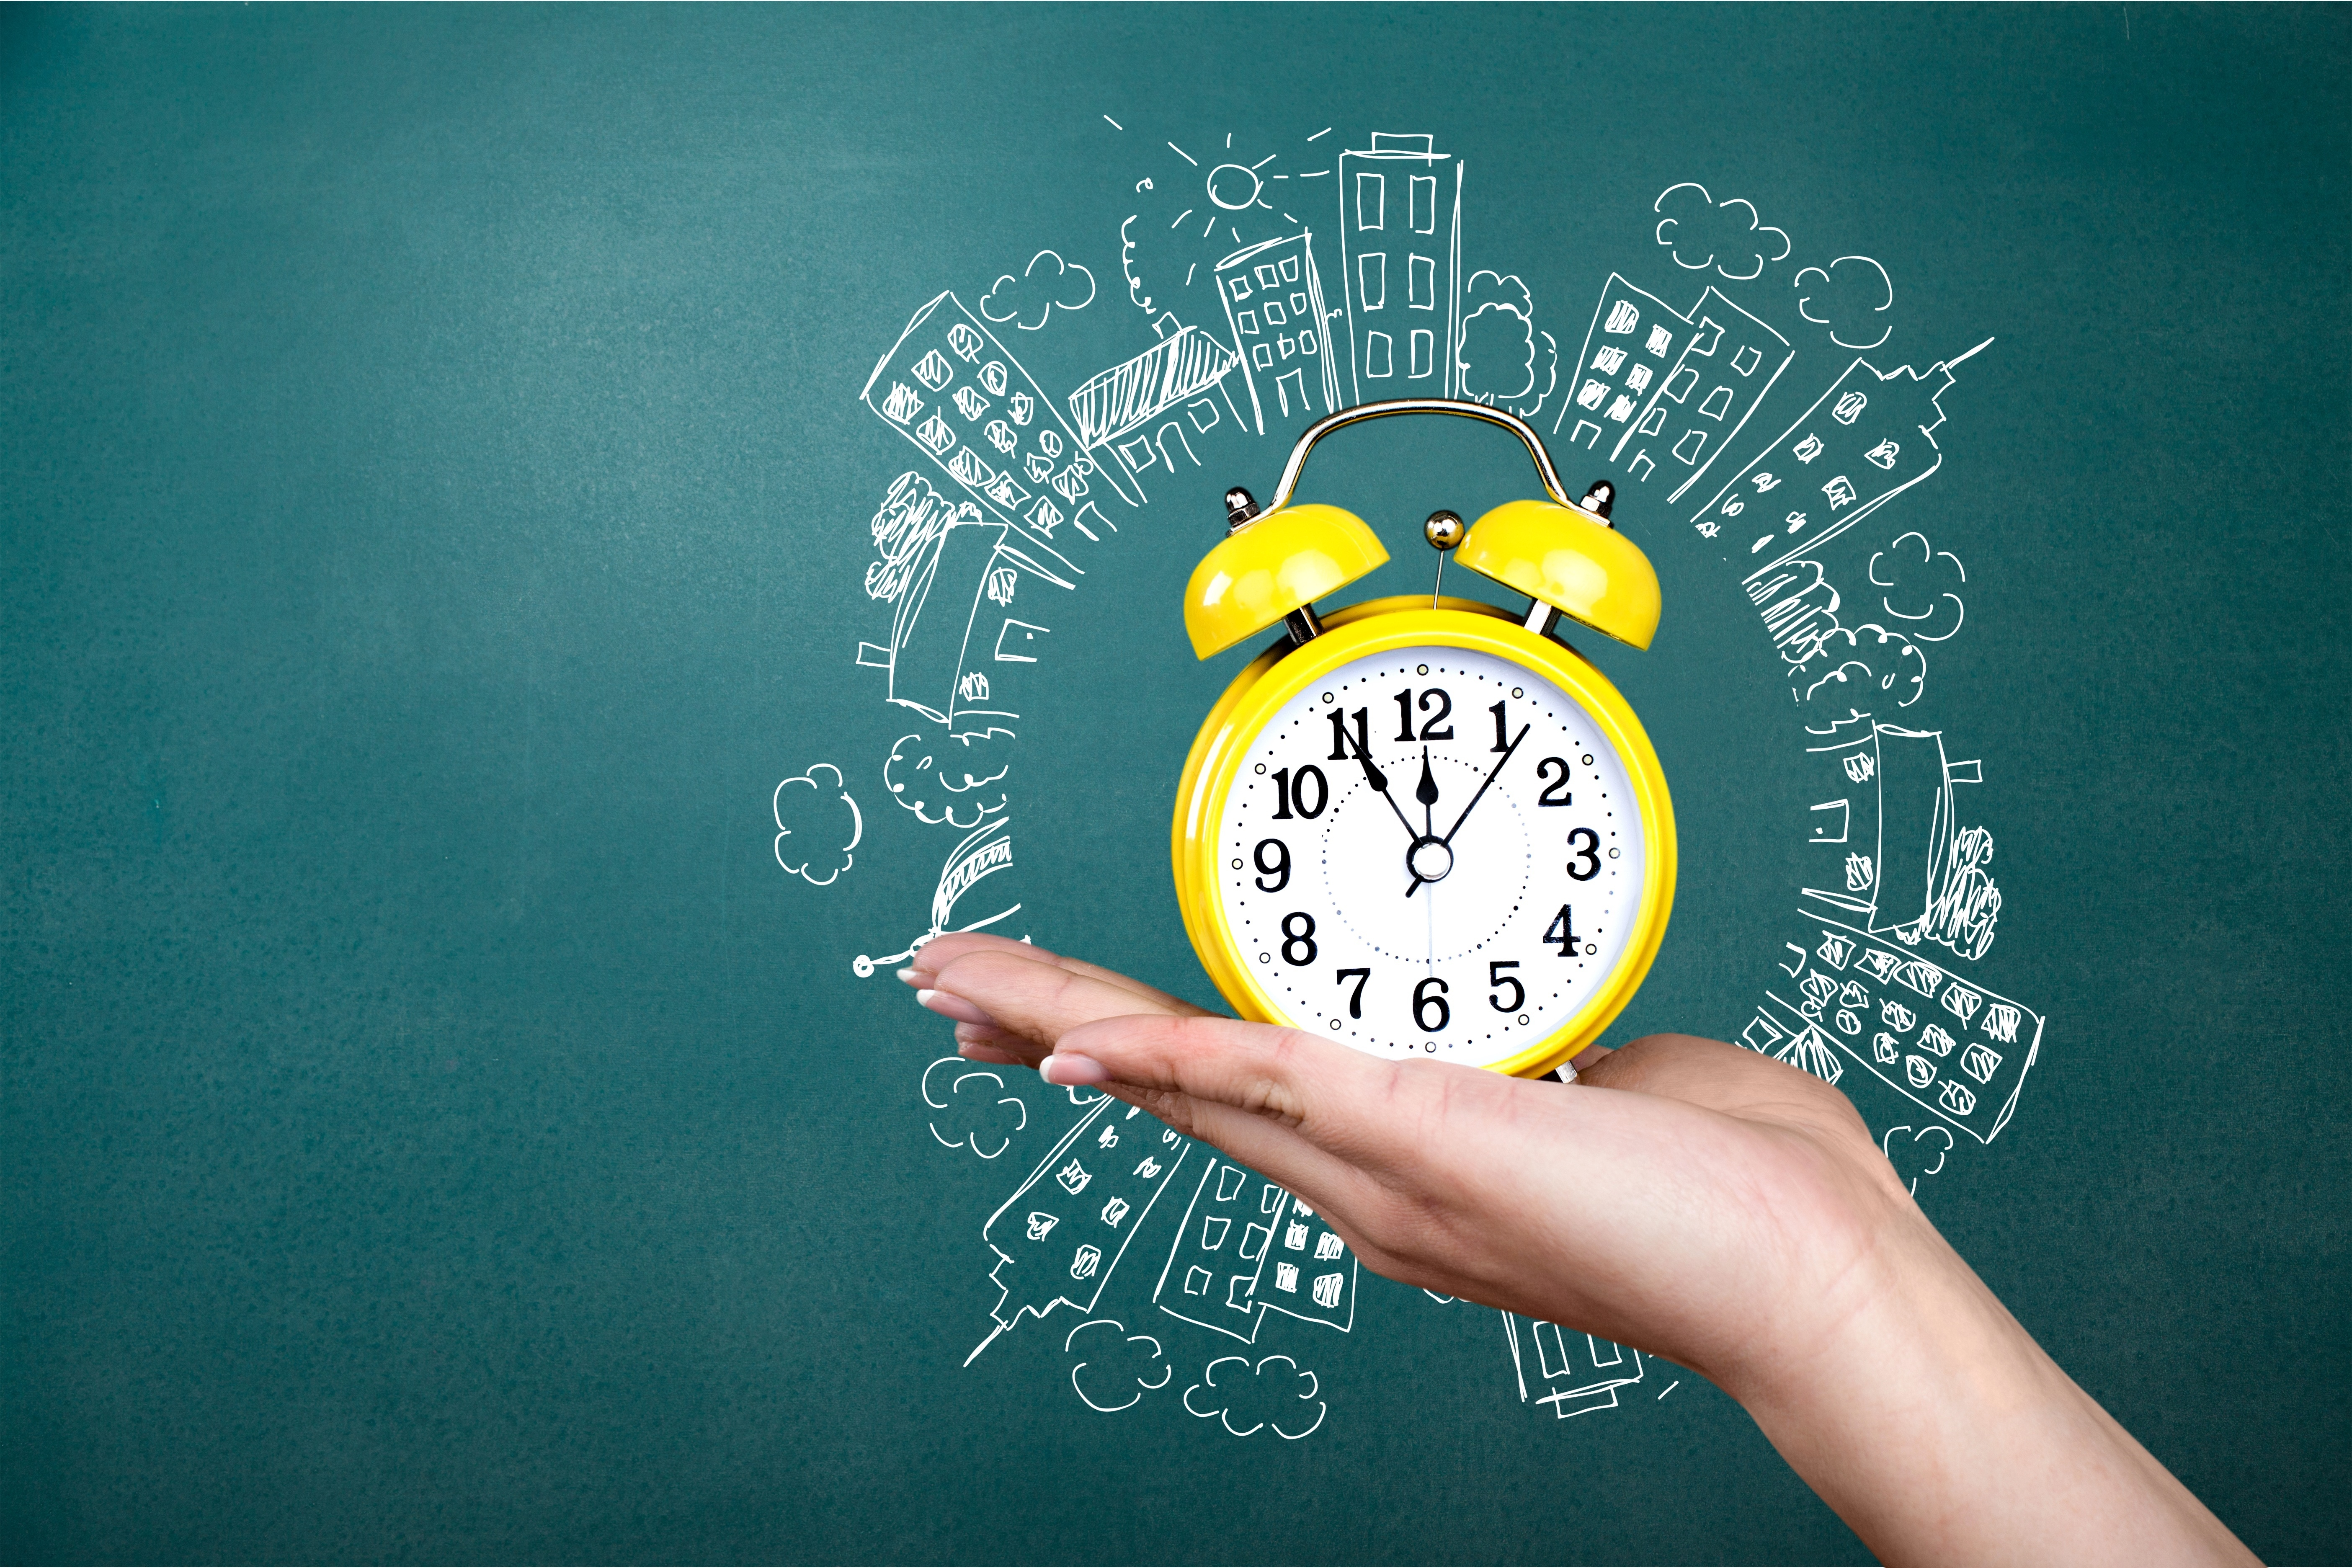 Repricing takes a shorter time to be processed, as compared to refinancing.